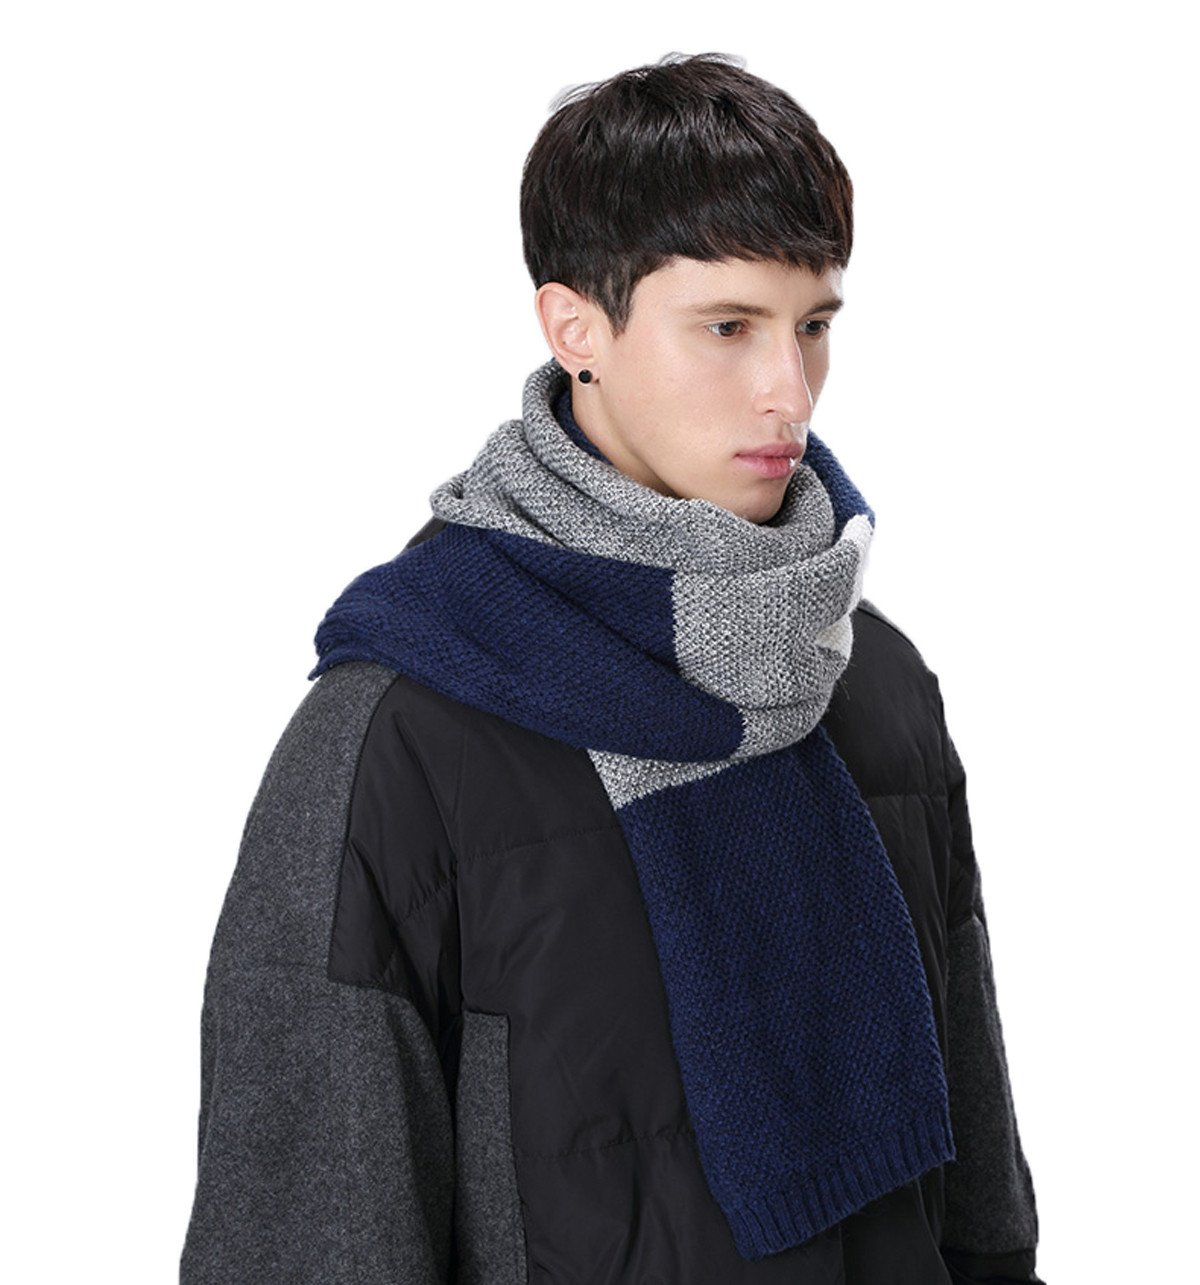 Men's Winter Scarf, Color Block Striped Long Scarf Knit Wool Cashmere Feel Soft Fashion Scarves